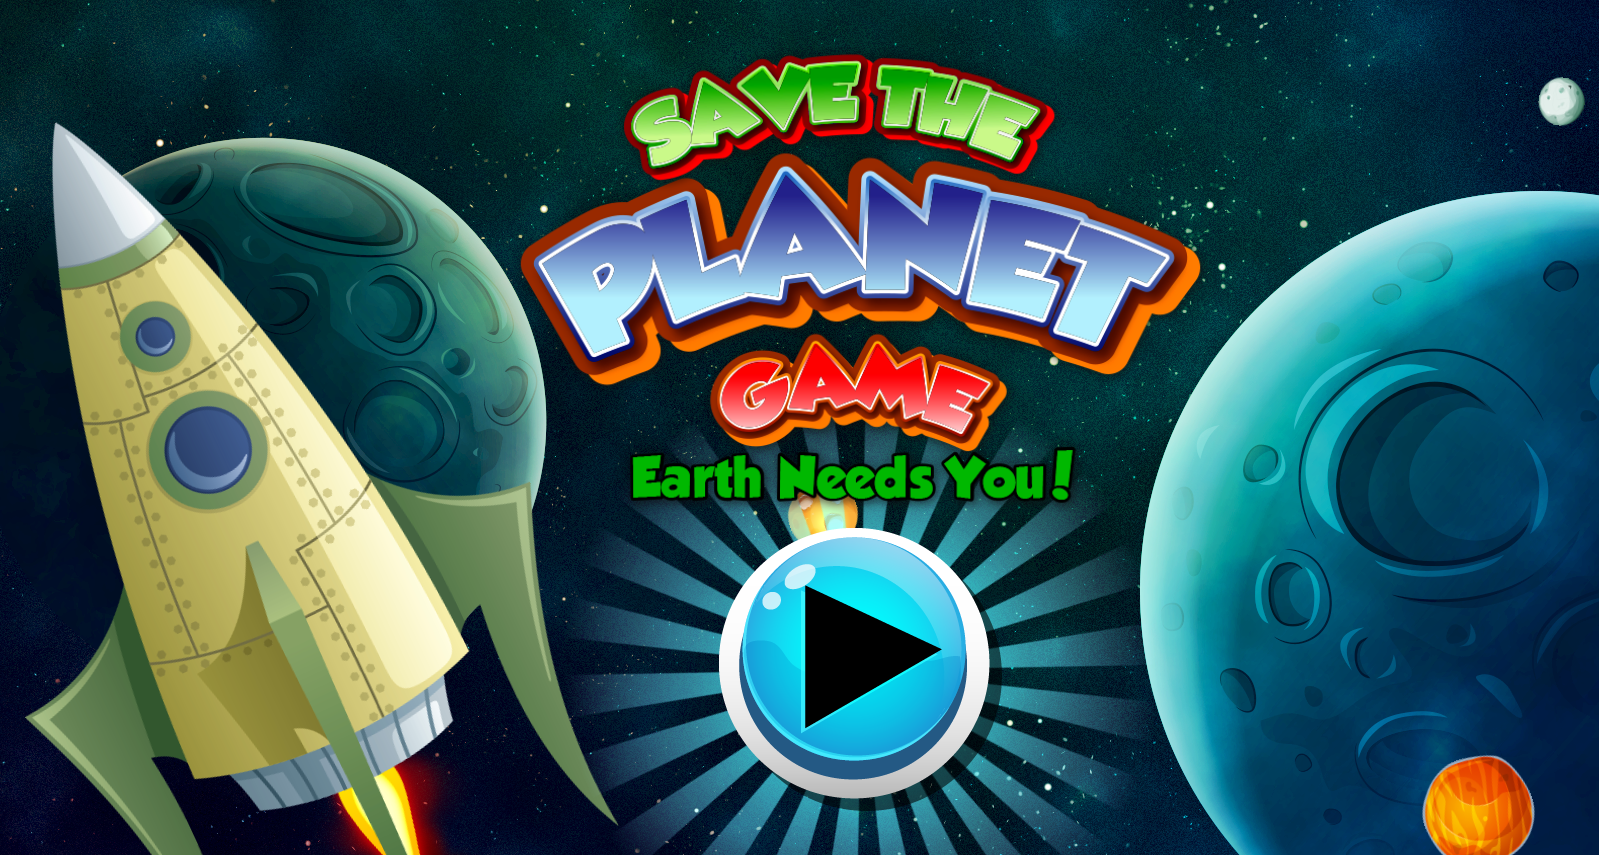 Image Save the Planet Game!